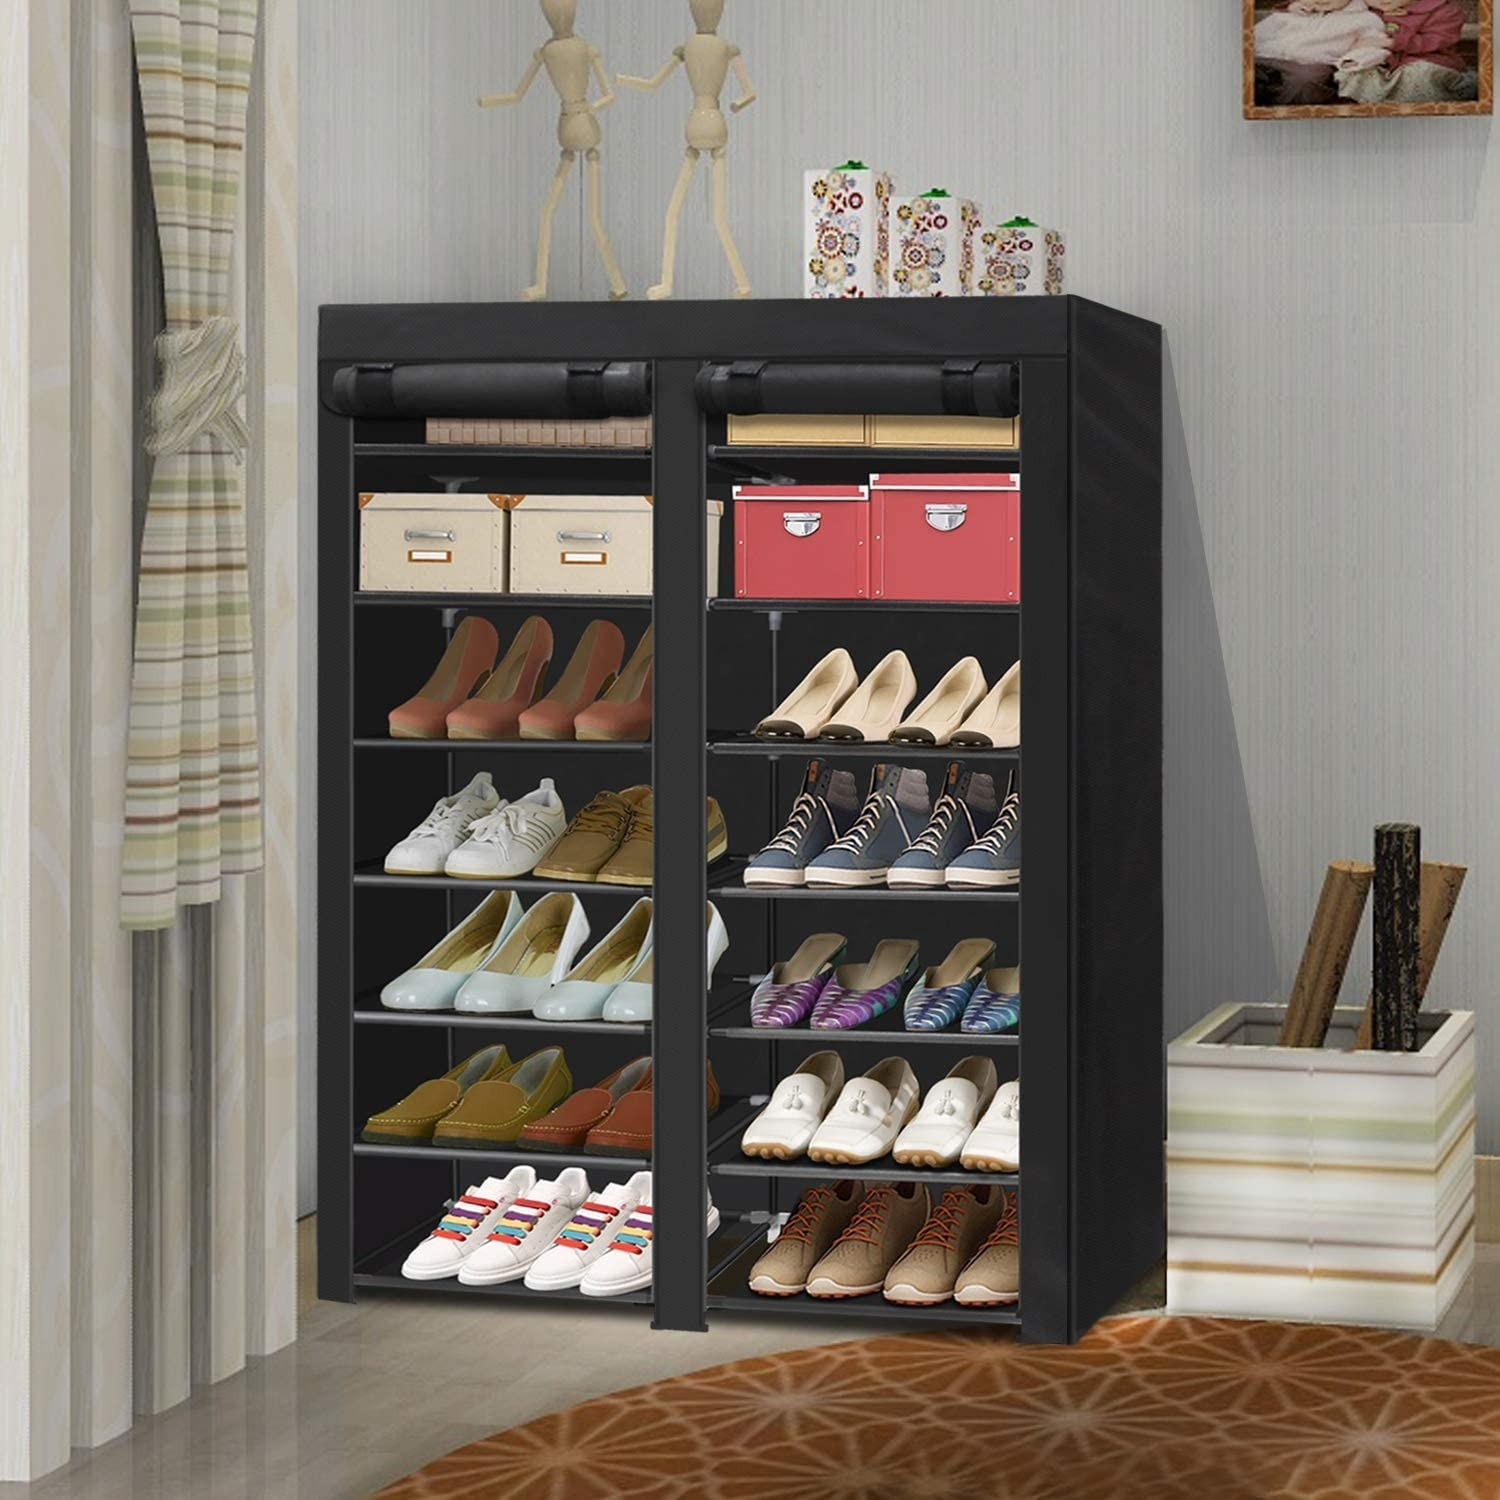 The black shoe organizer with a black covering on the front for easy hiding